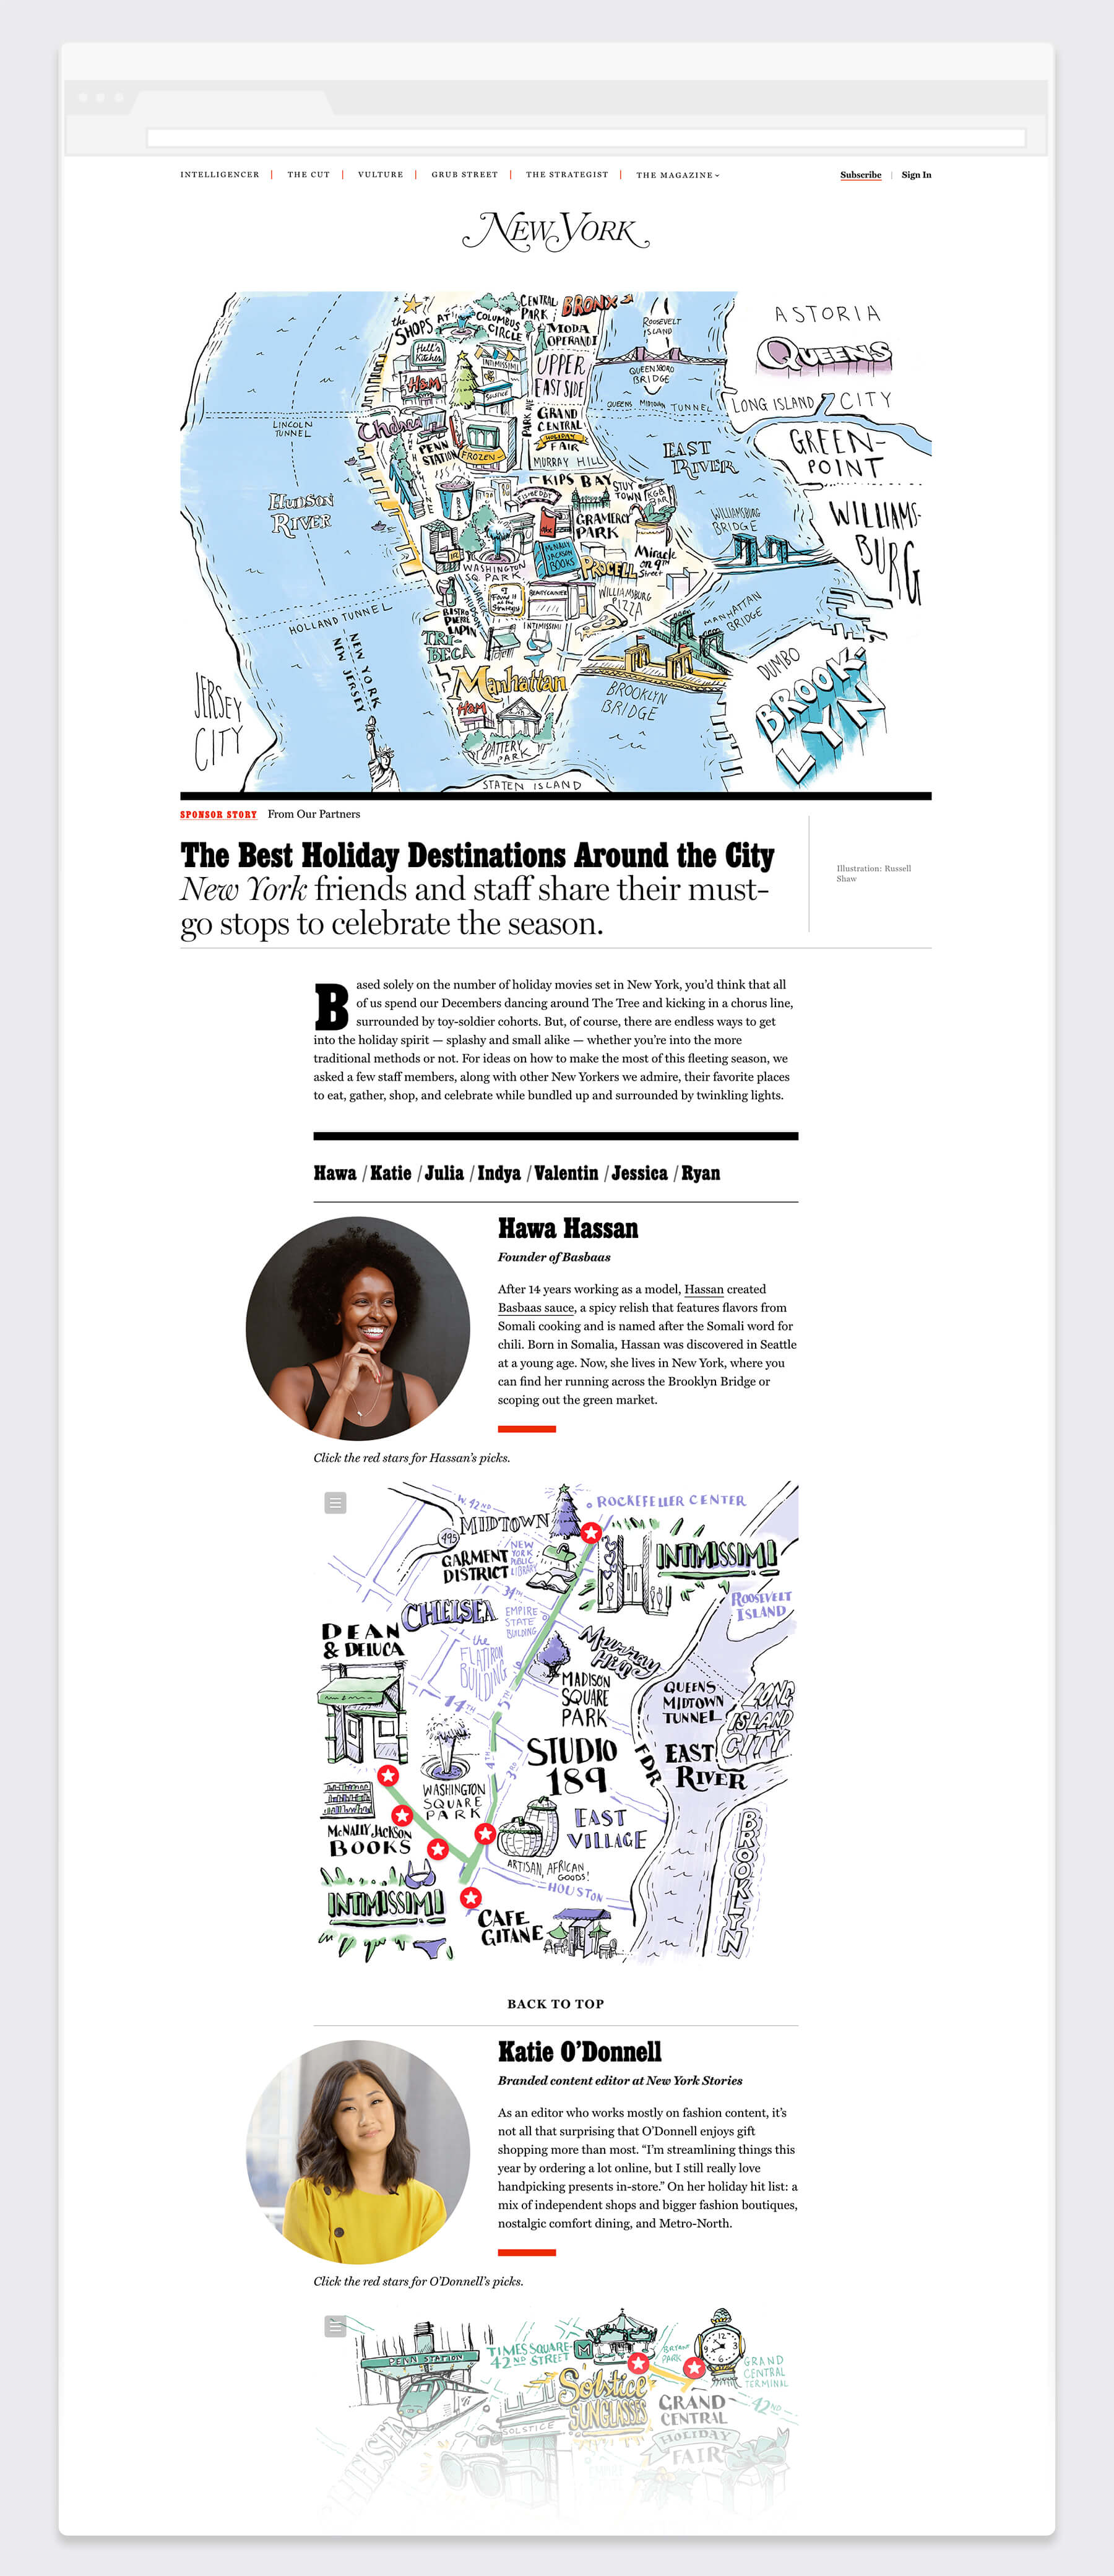 Website mockup of New York magazine article on best holiday shopping guides to the city featuring map editorial illustrations